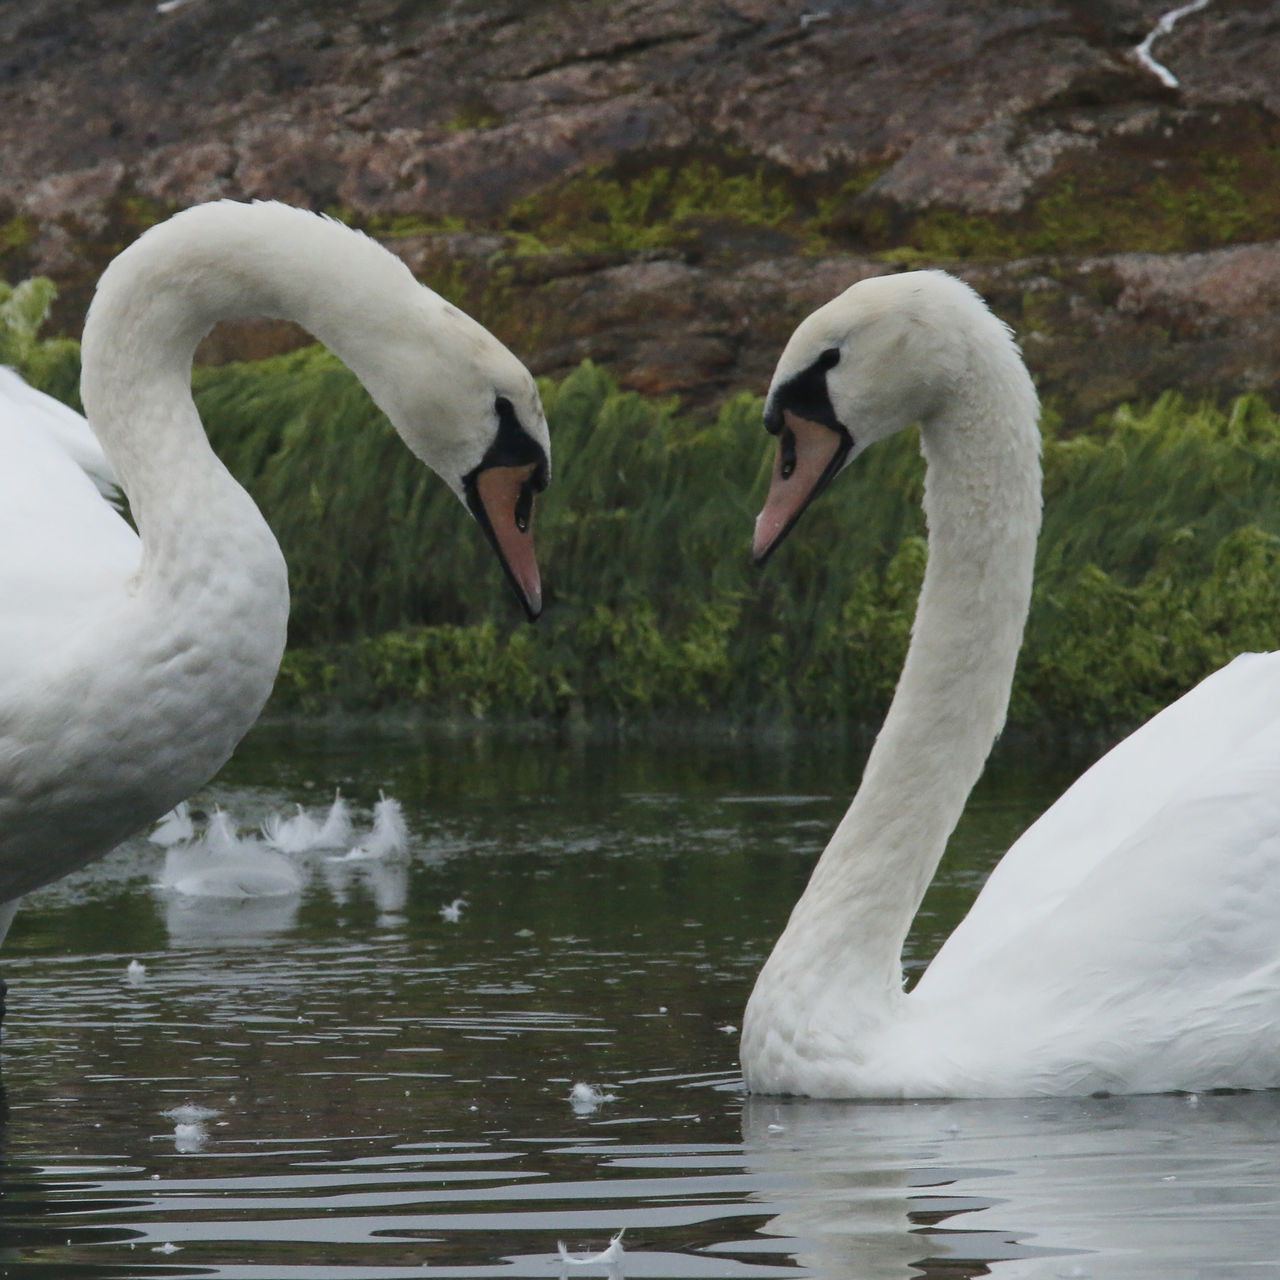 Animal Themes Animals In The Wild Avian Beak Bird Feathers Heart No People Outdoors Sea Swan Swancouple Swimming Togetherness Two Animals Water Water Bird Wildlife